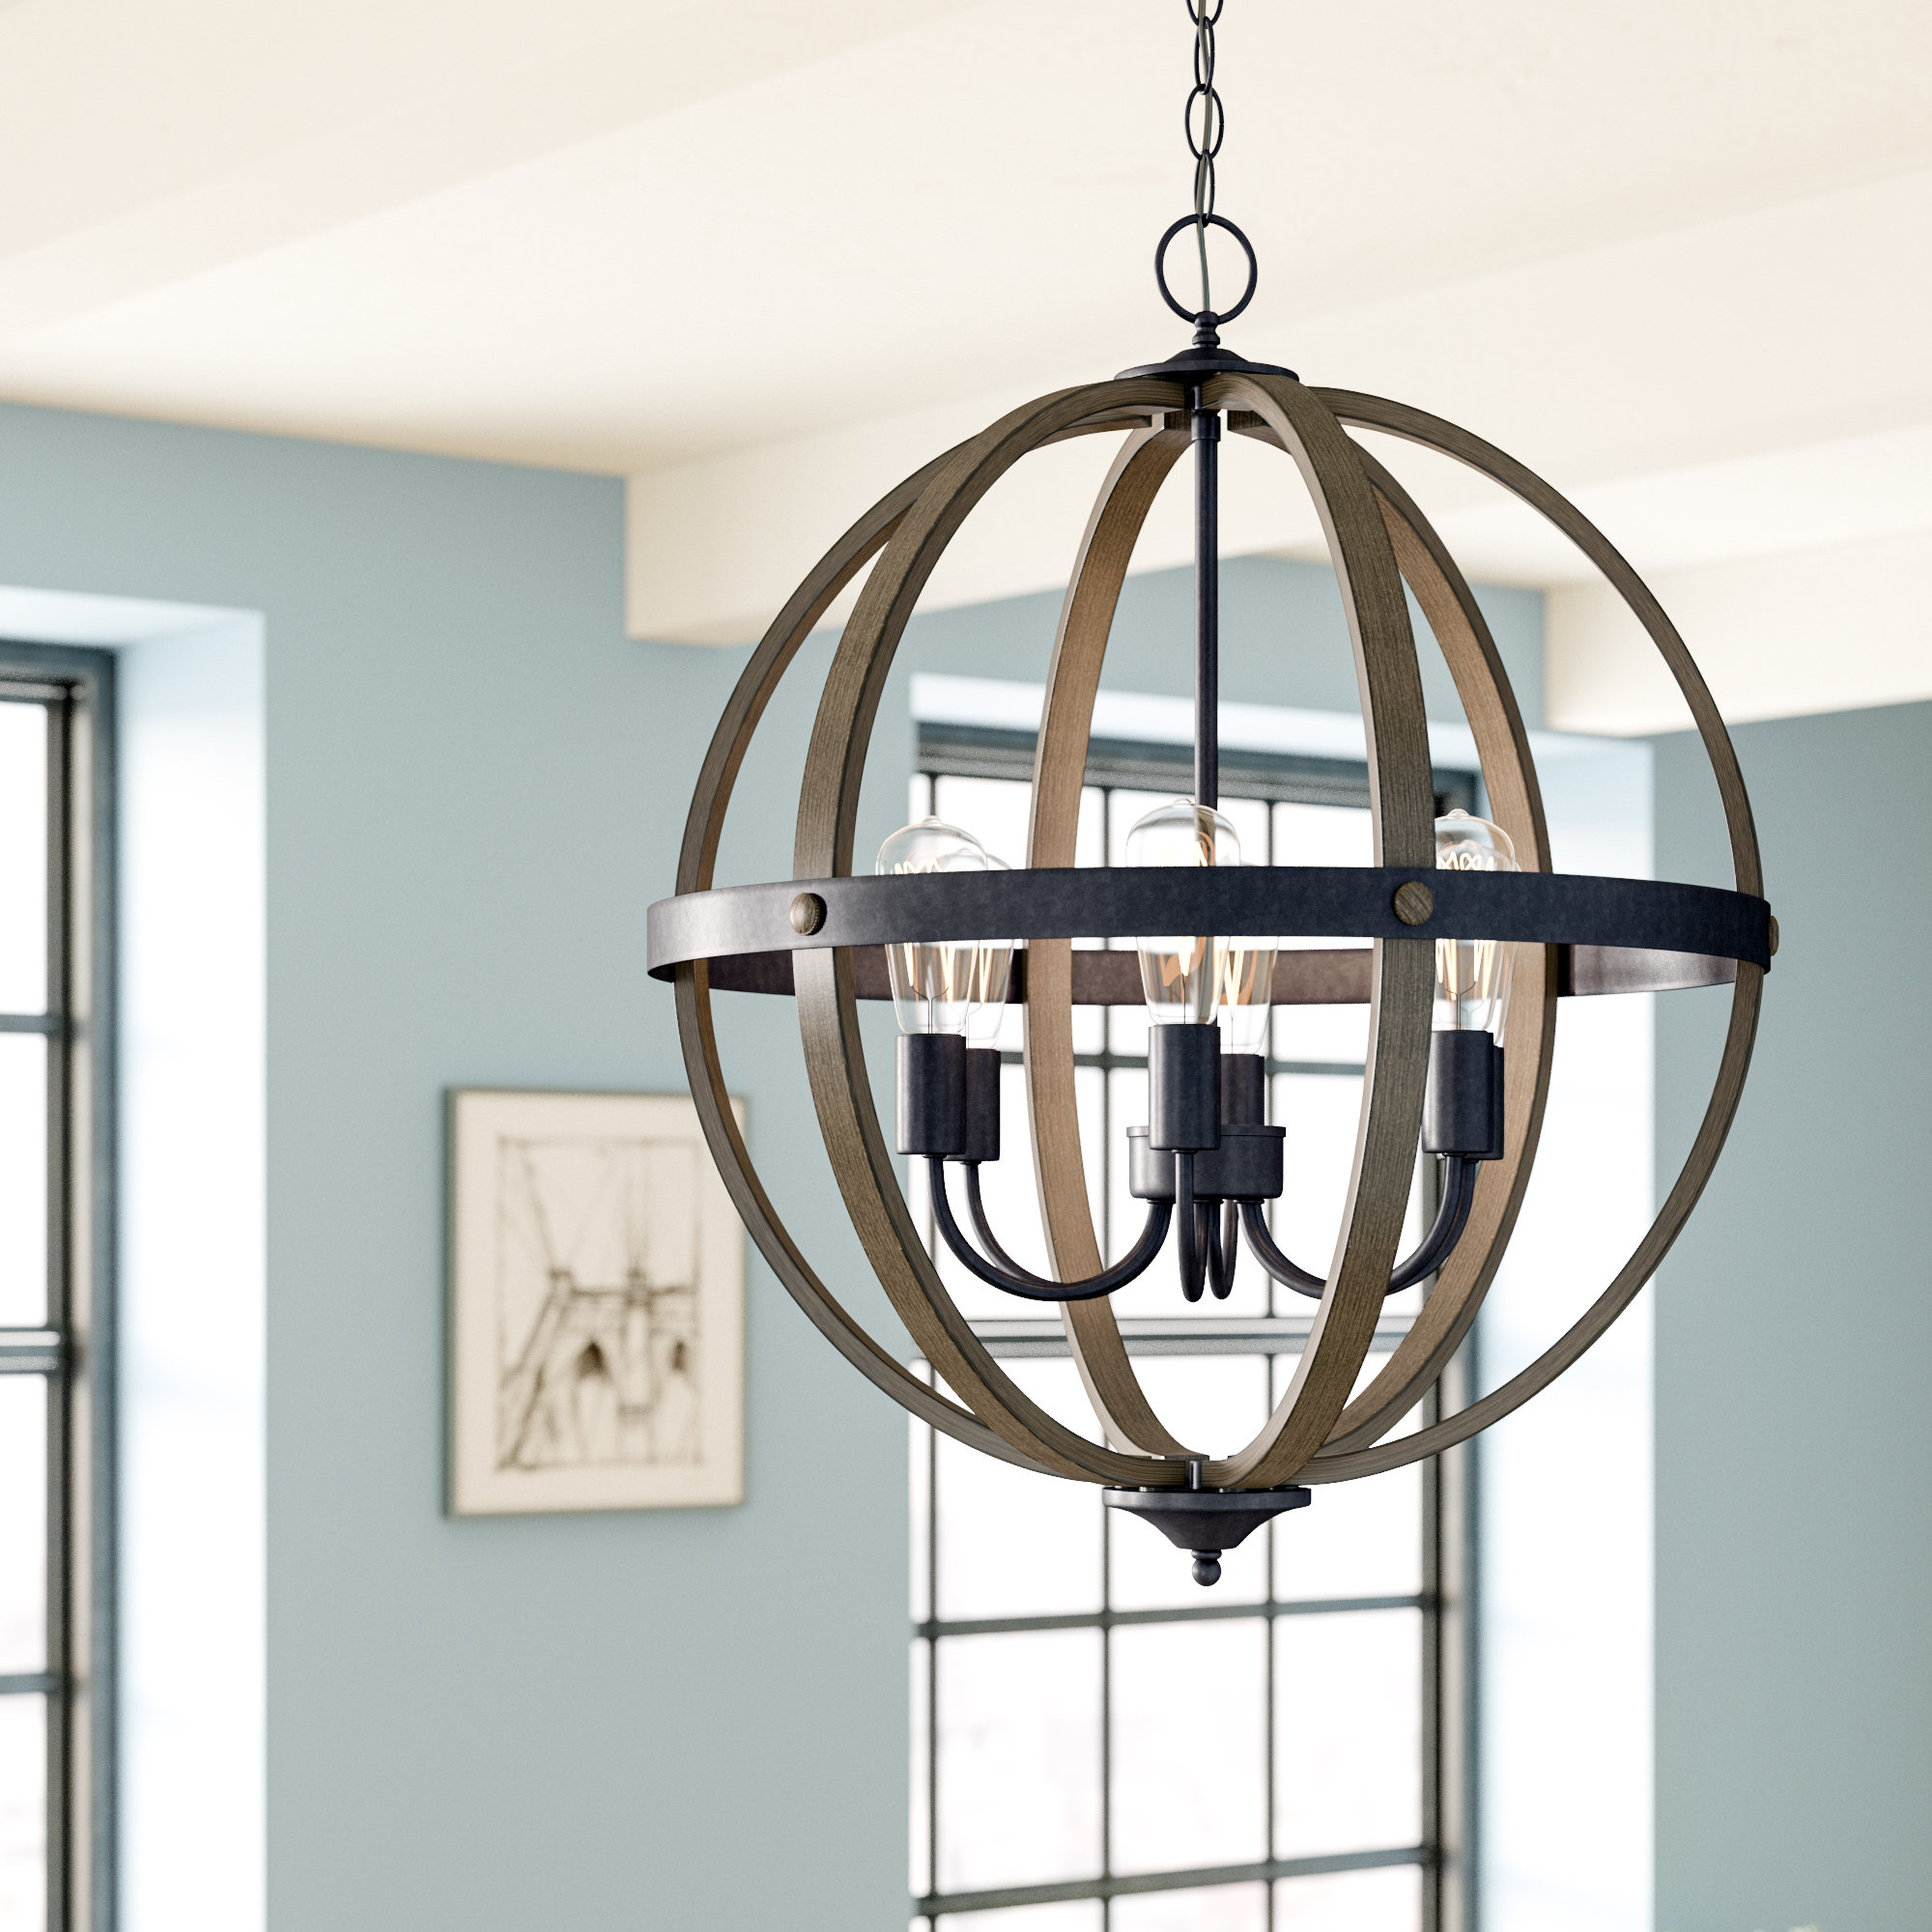 Stairway Chandelier You'll Love In 2019 | Wayfair within Cavanagh 4-Light Geometric Chandeliers (Image 28 of 30)